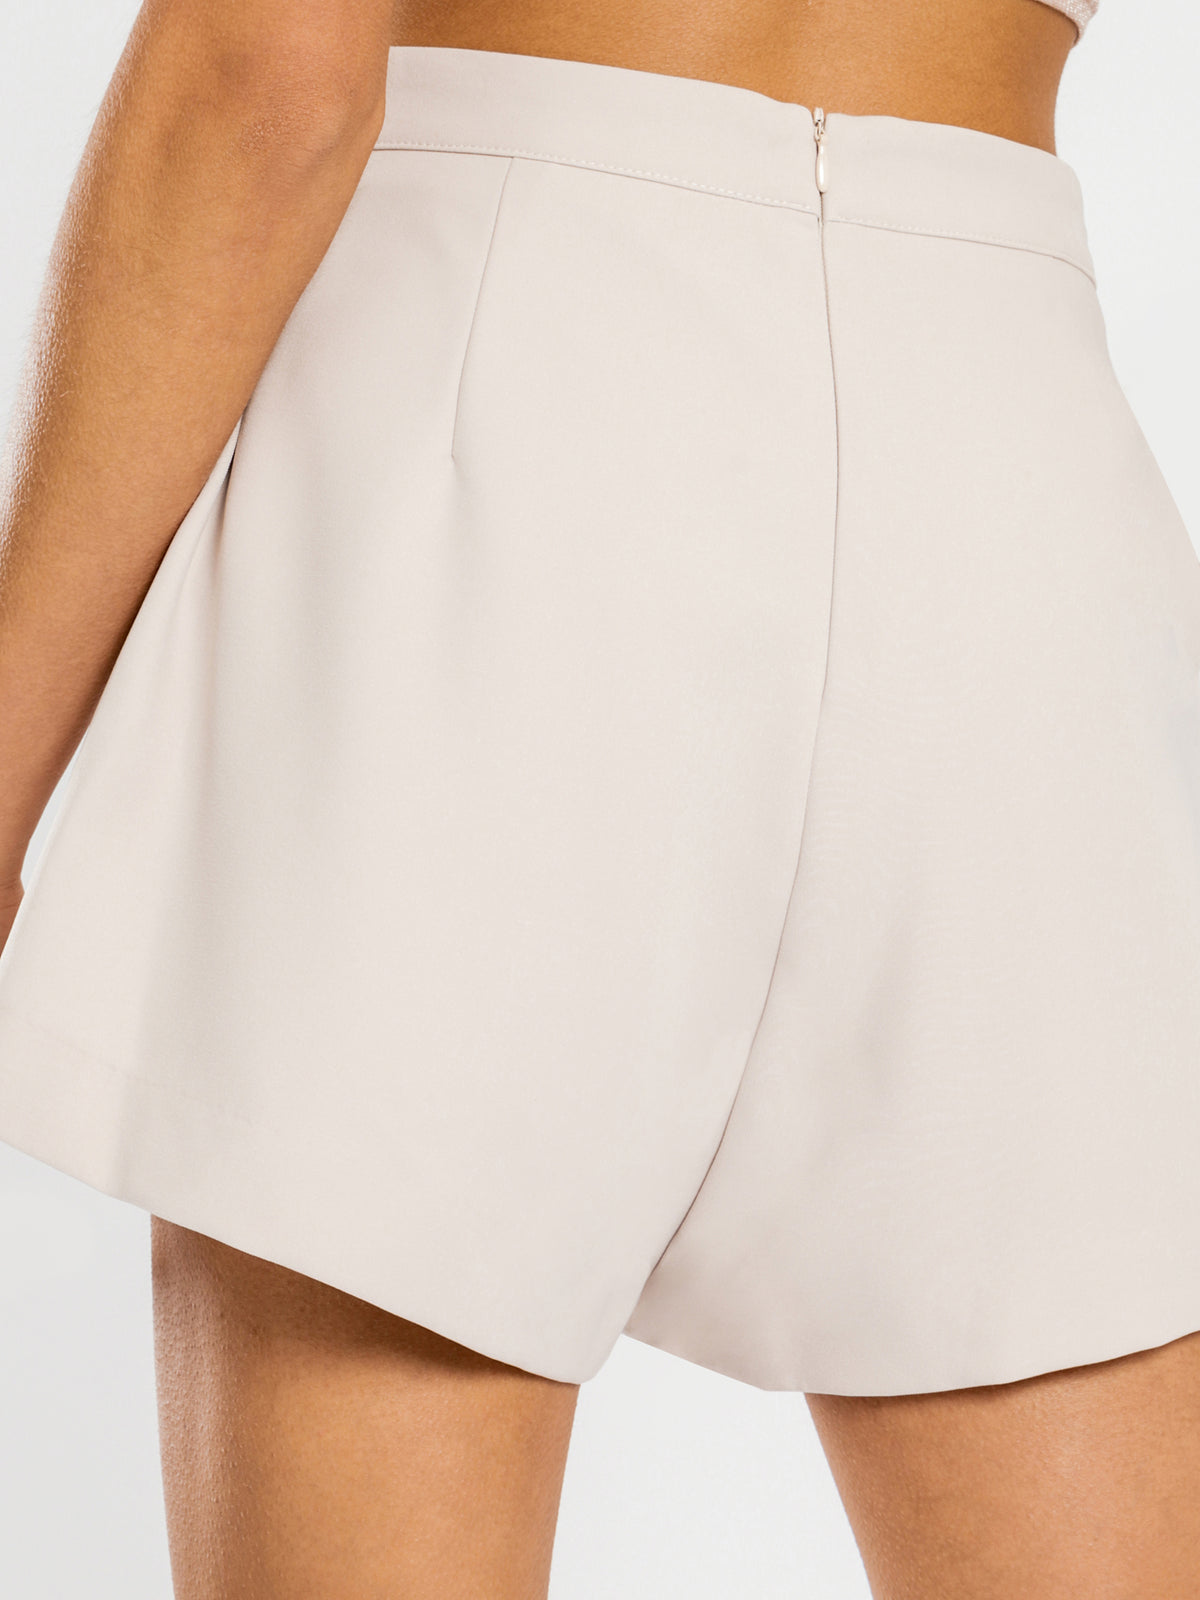 Greta Shorts in Beige